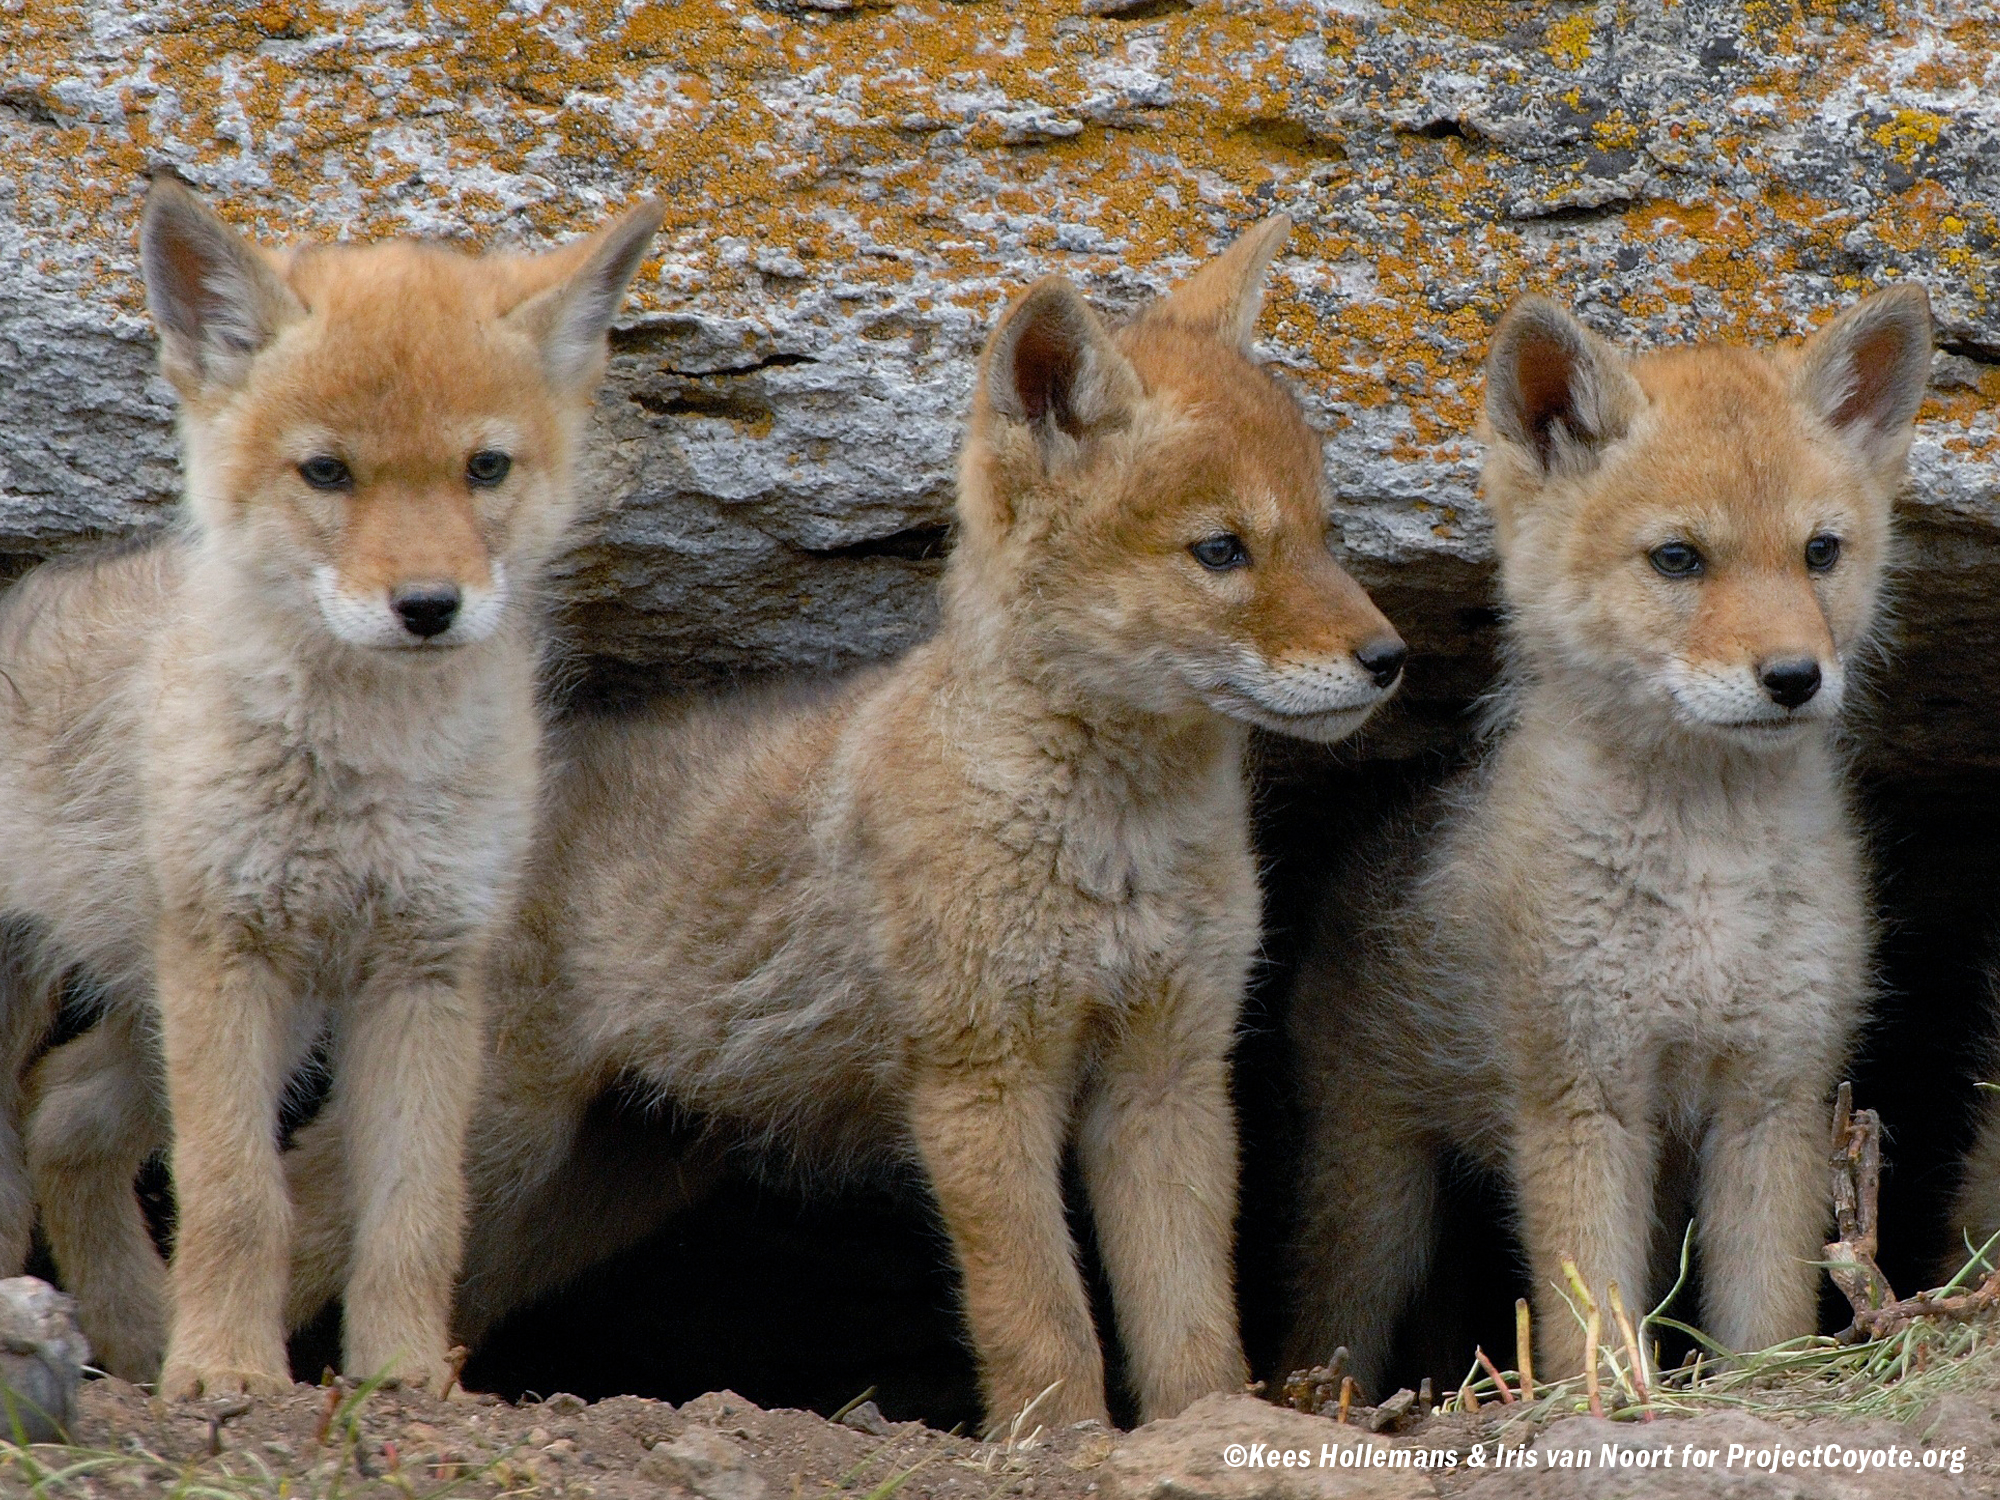 Project Coyote Lies: exposing the animal rights group lies